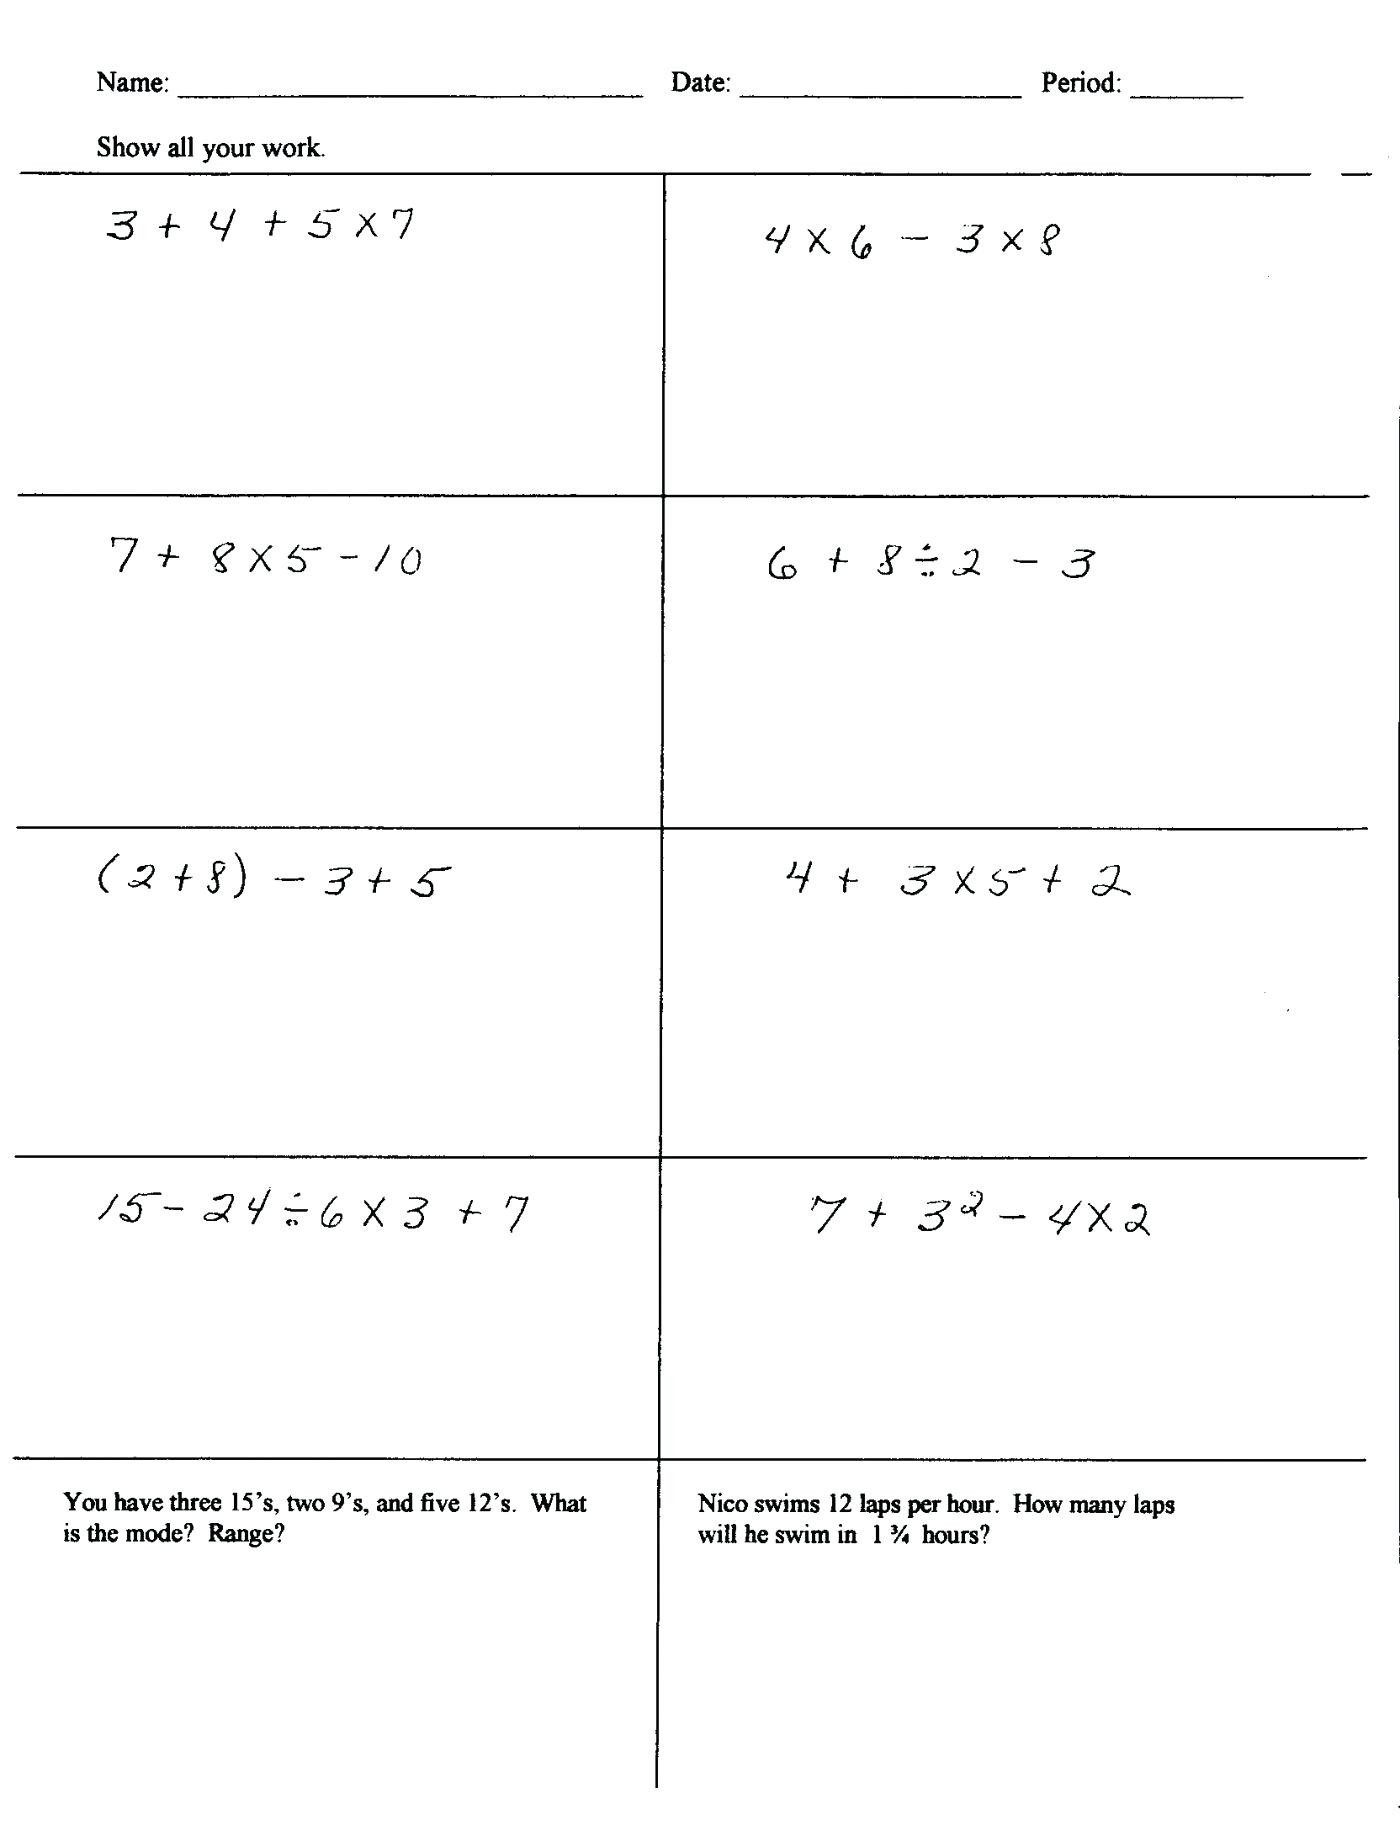 hight resolution of Bodmas Worksheets With Brackets   Printable Worksheets and Activities for  Teachers